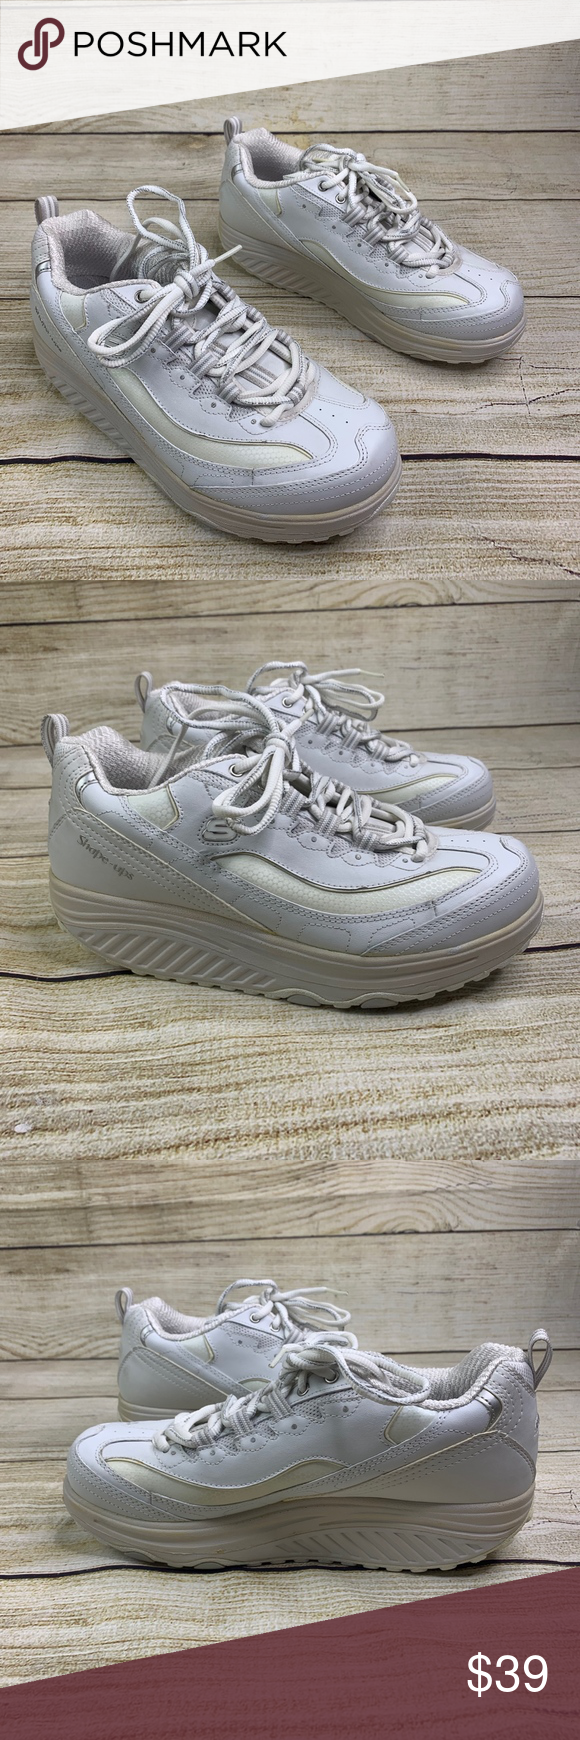 Skechers Shape Ups Toning Walking Sneakers 9 These shoes are